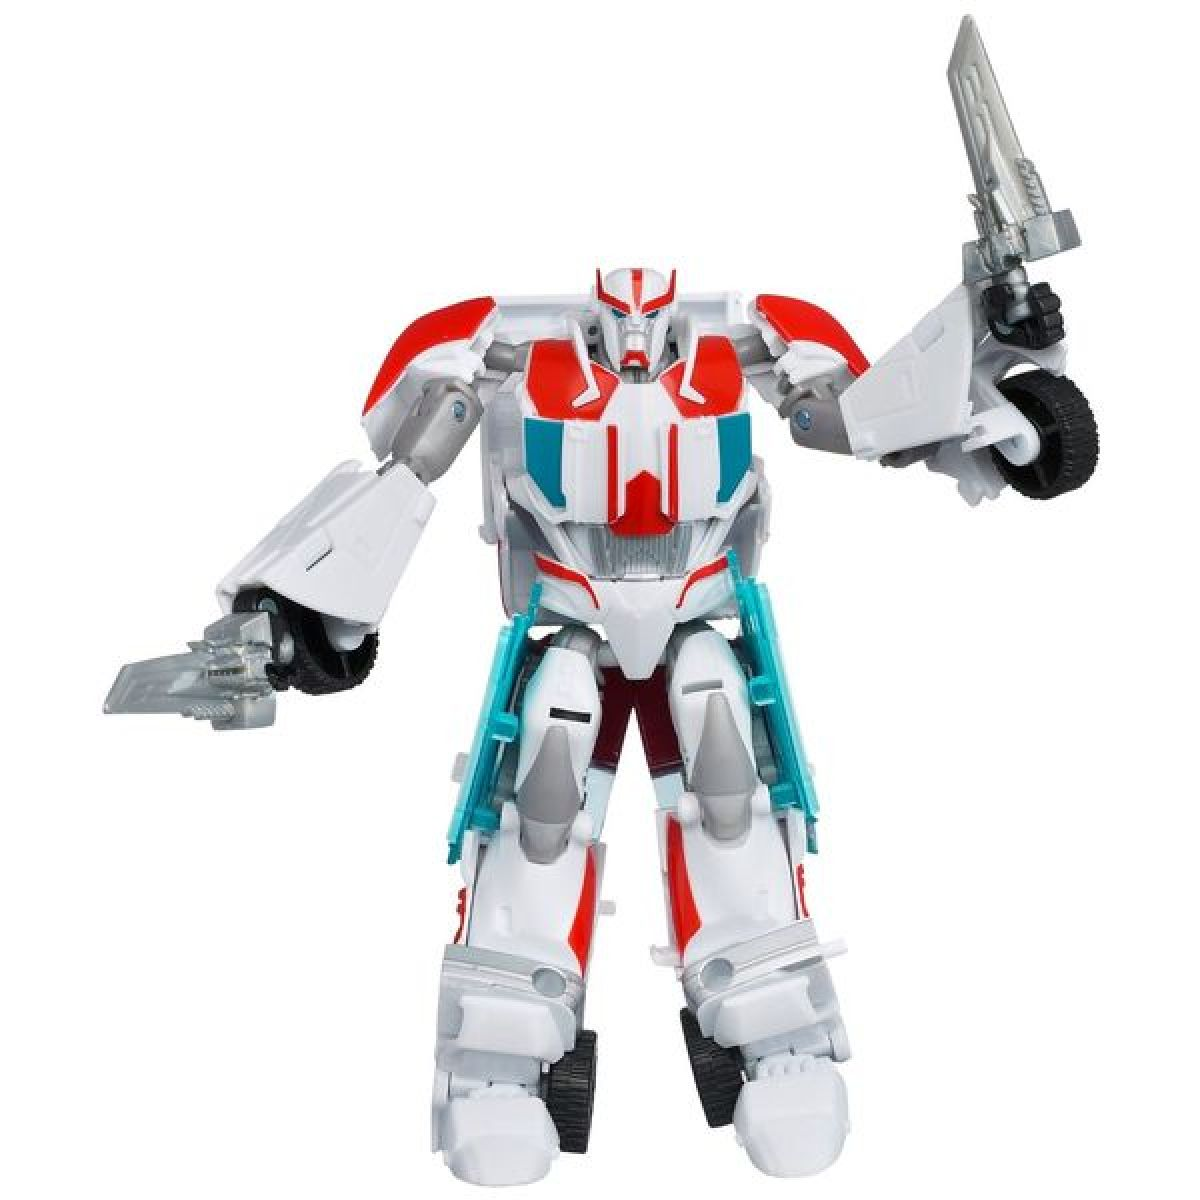 Transformers Robots in Disguise Hasbro - Autobot Ratchet